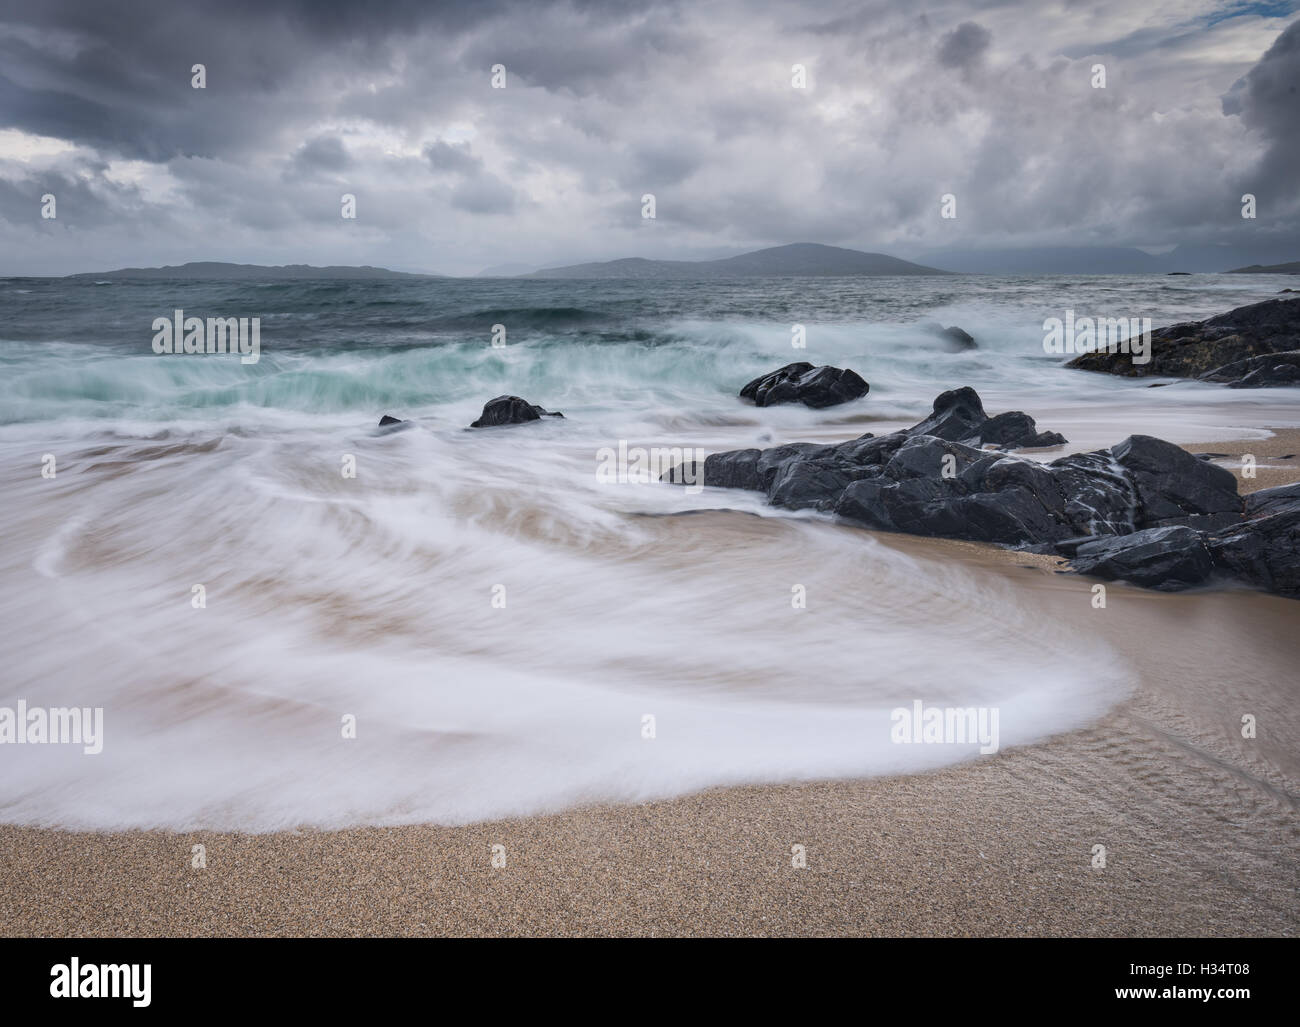 Stormy seas at Bagh Steinigidh, Isle of Harris, Outer Hebrides, Western Isles, Scotland - Stock Image